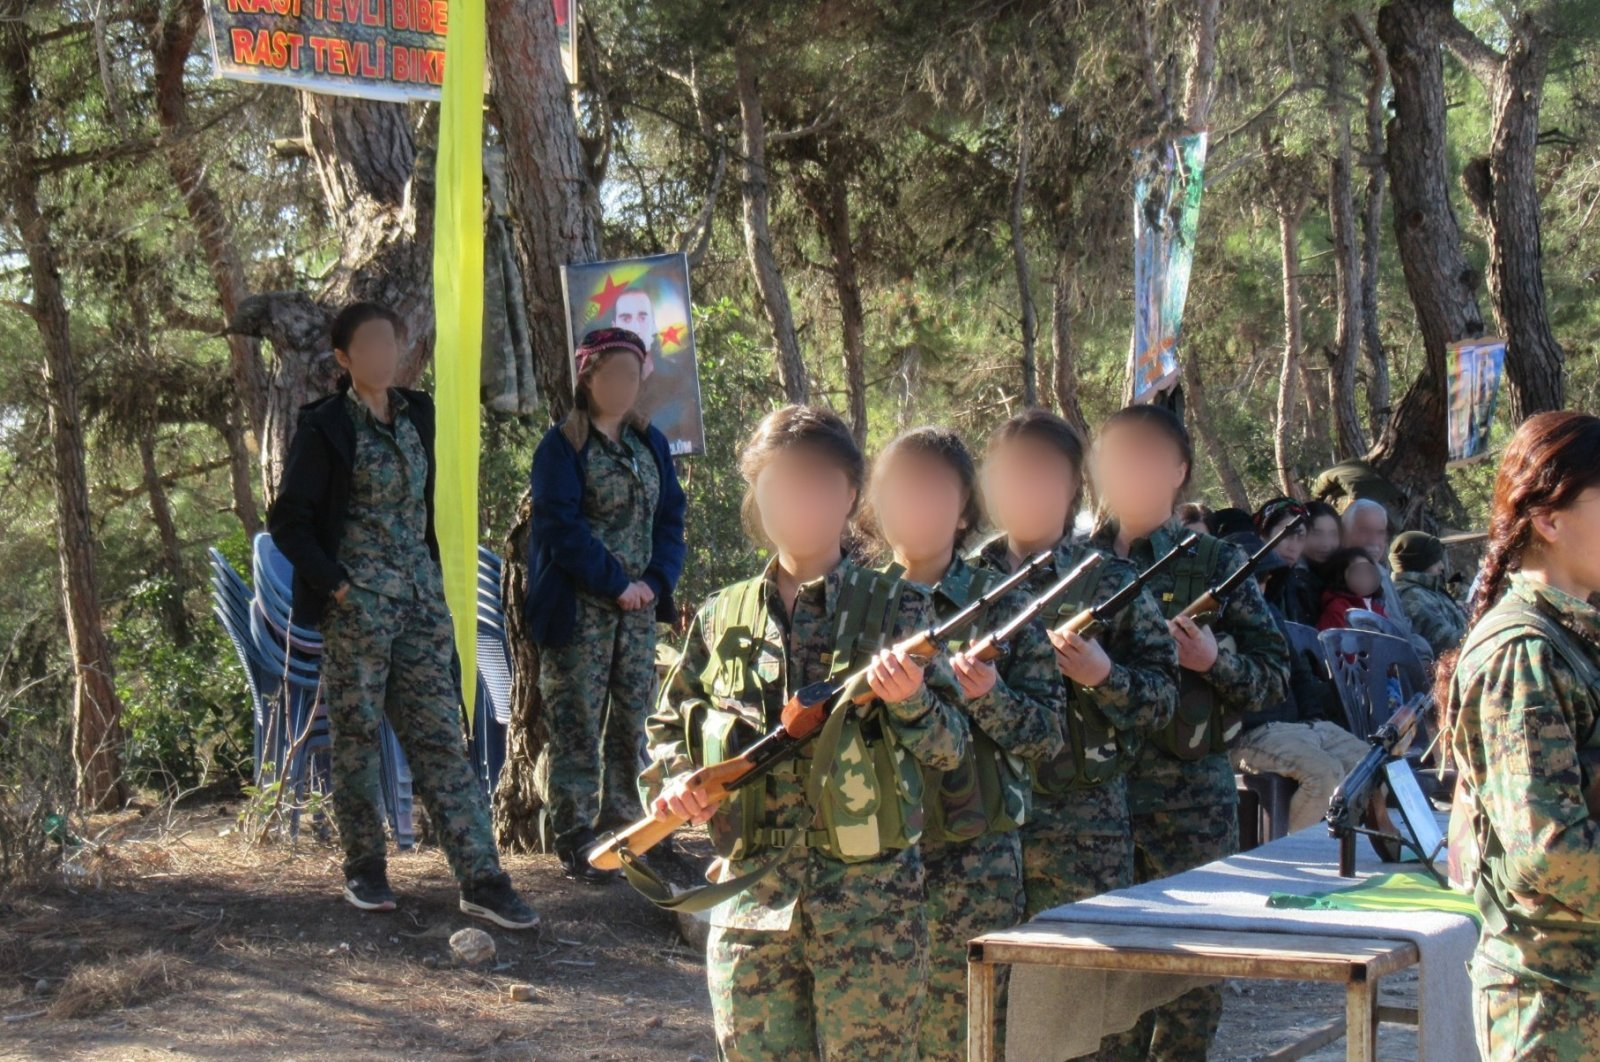 The YPG/PKK's child soldiers receive training at an unknown location, Aug. 3, 2018. (AA Photo)